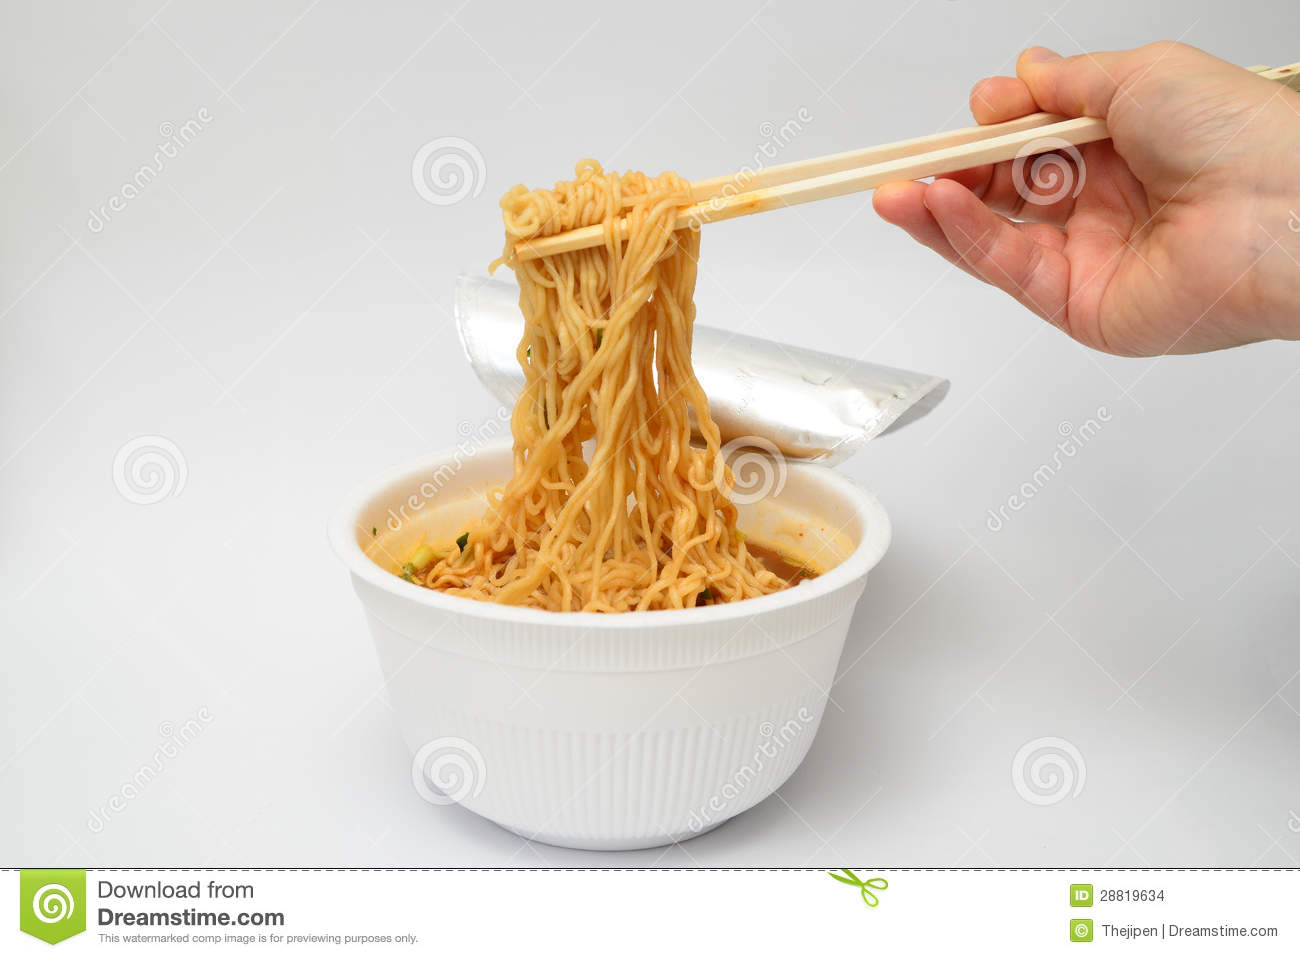 how to use chopsticks to eat noodles